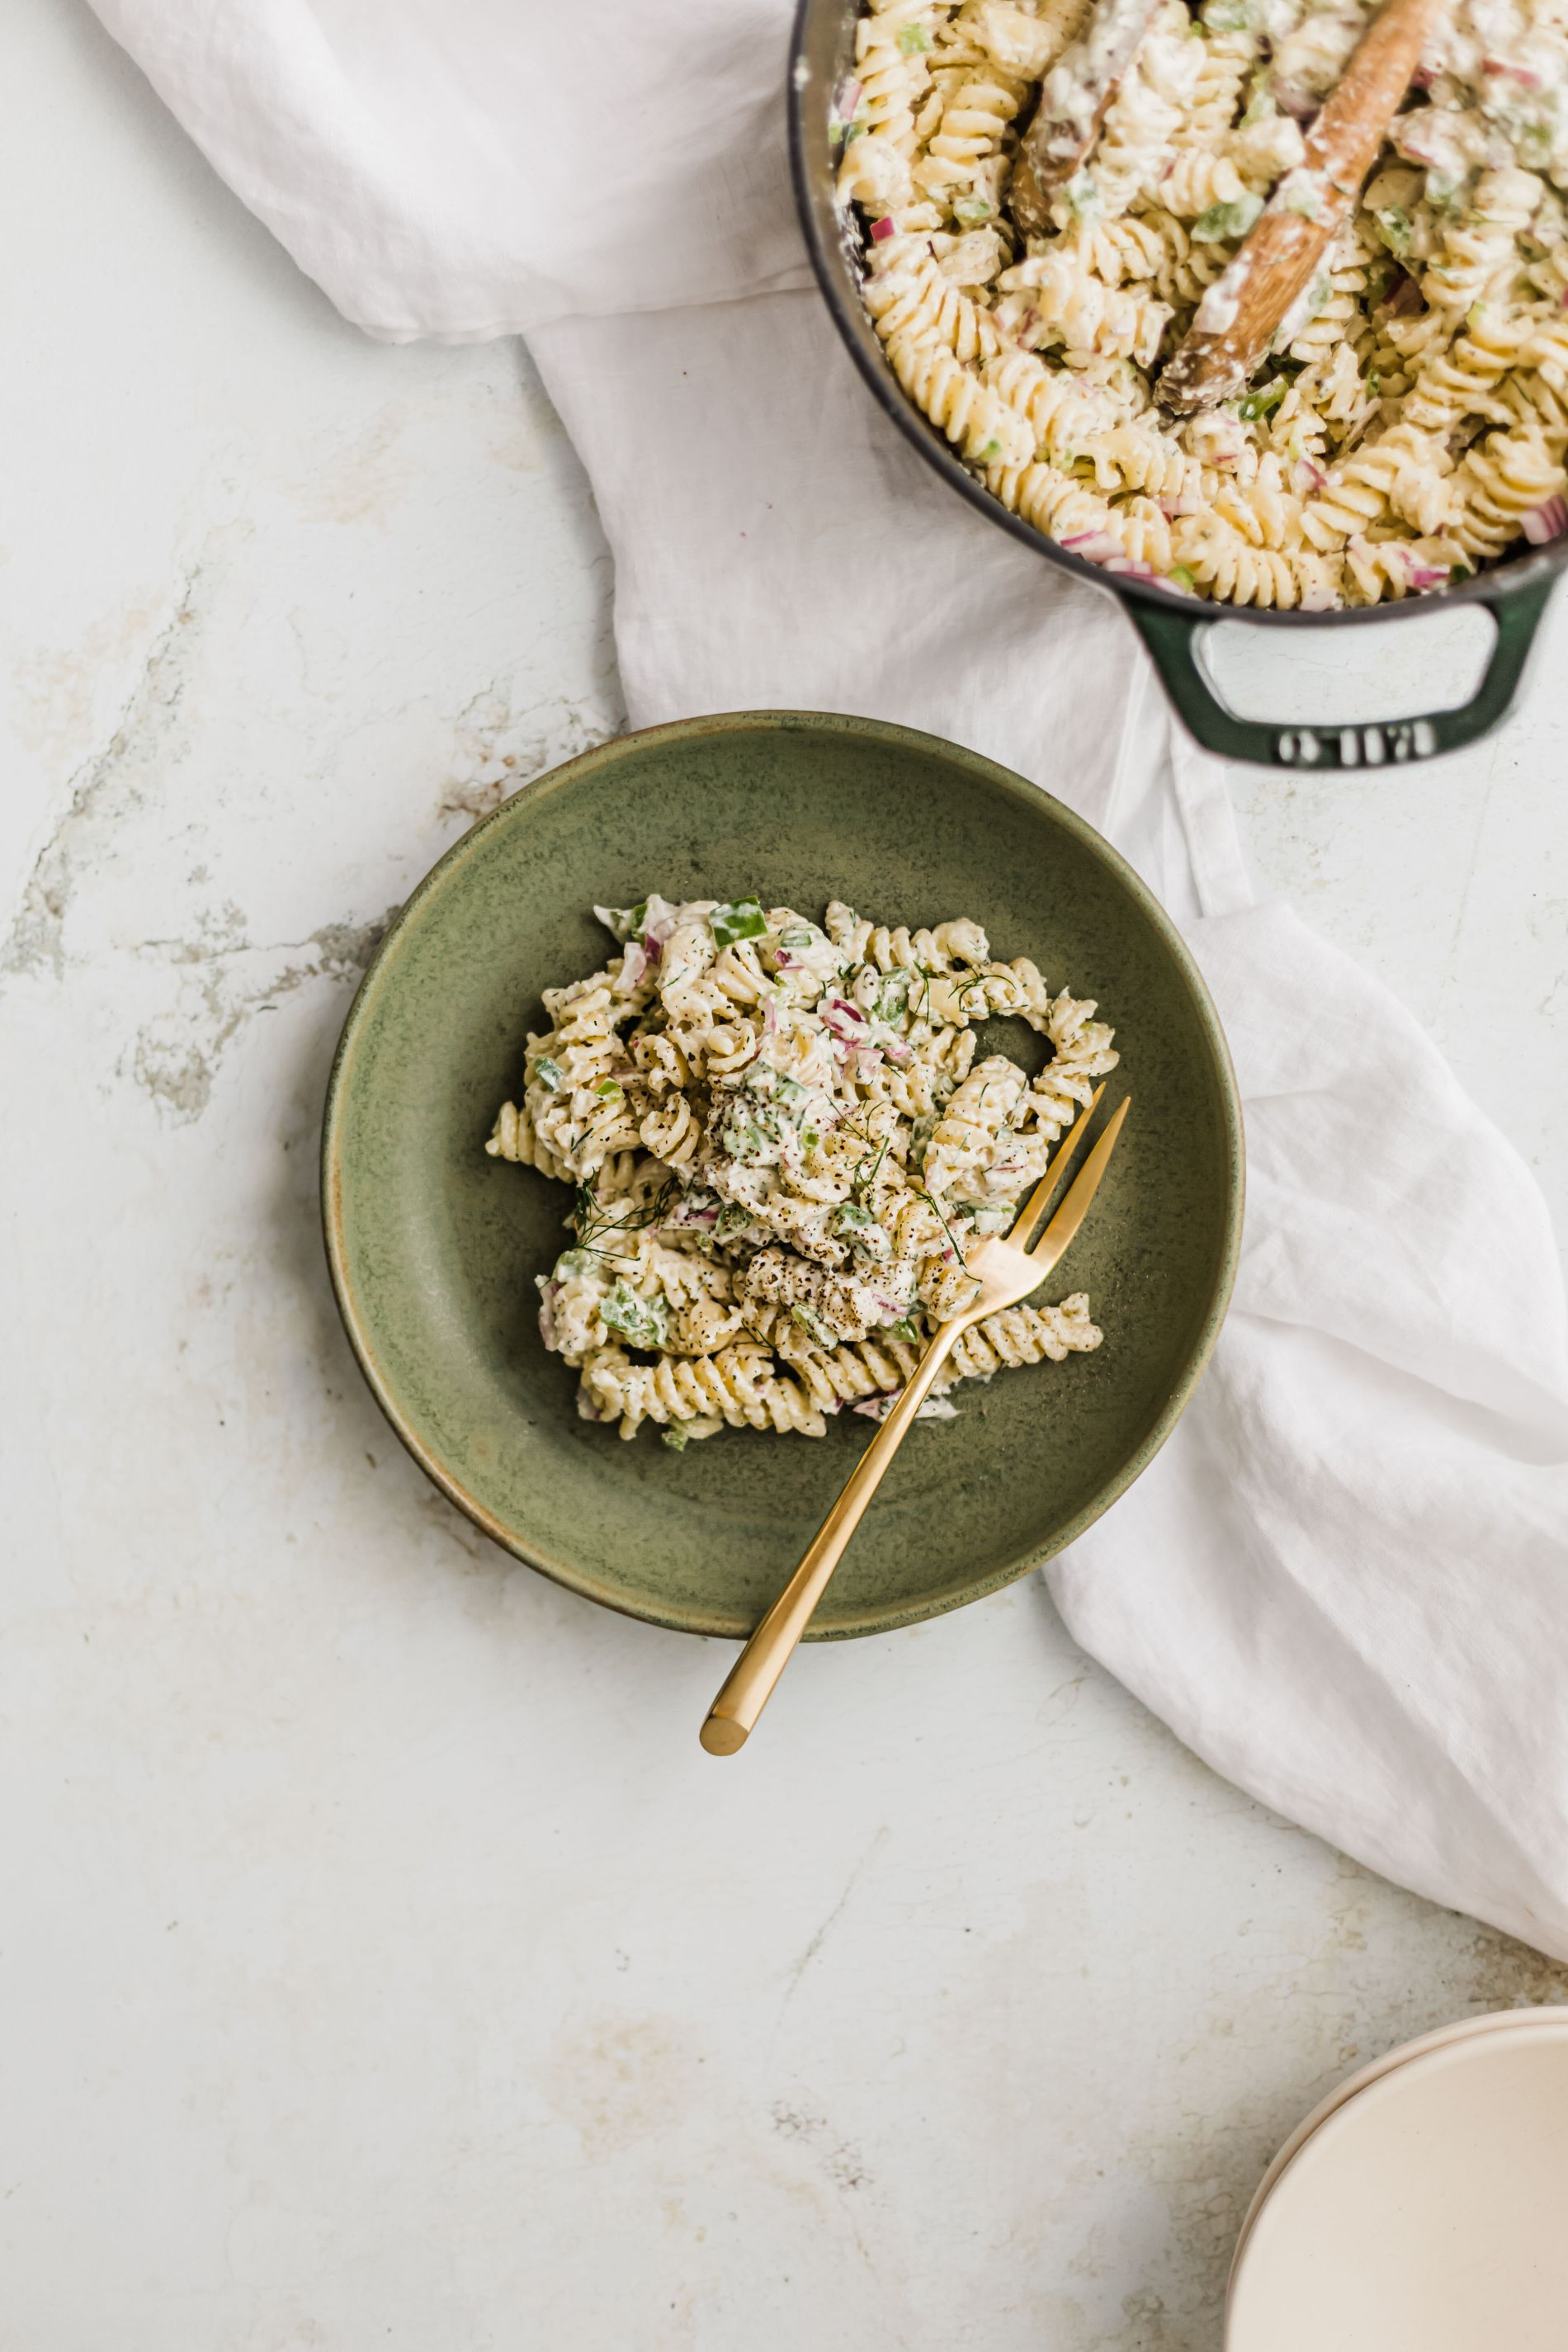 Creamy Feta & Dill Pasta Salad features a creamy feta & fresh dill dressing and peppers and red onions for the perfect crunch!